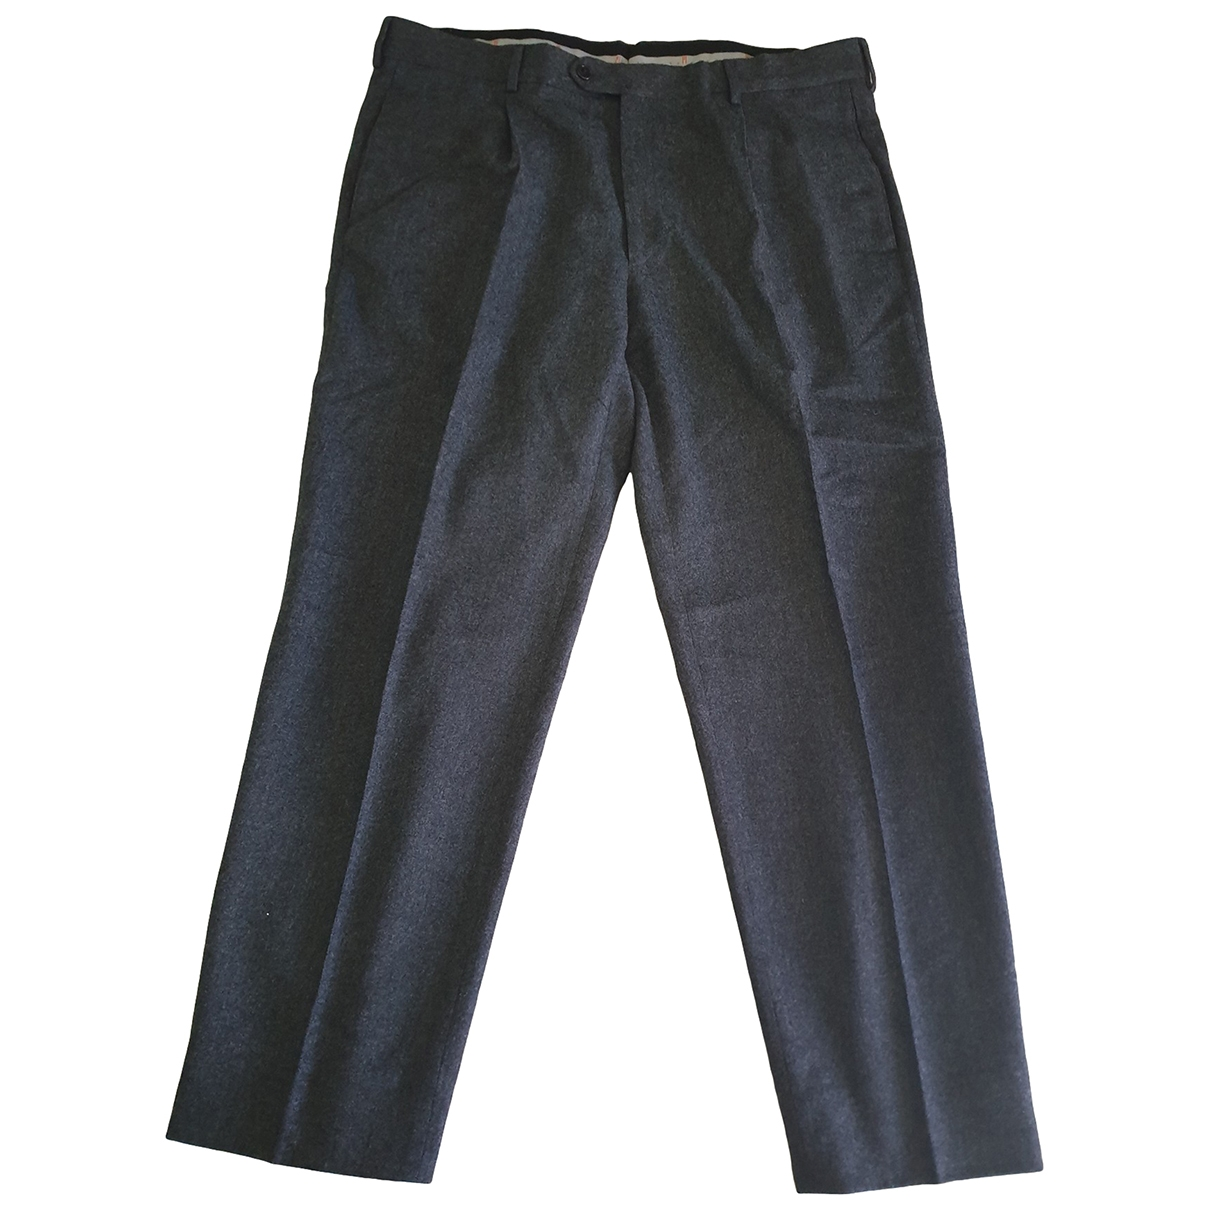 M Missoni \N Anthracite Wool Trousers for Men L International